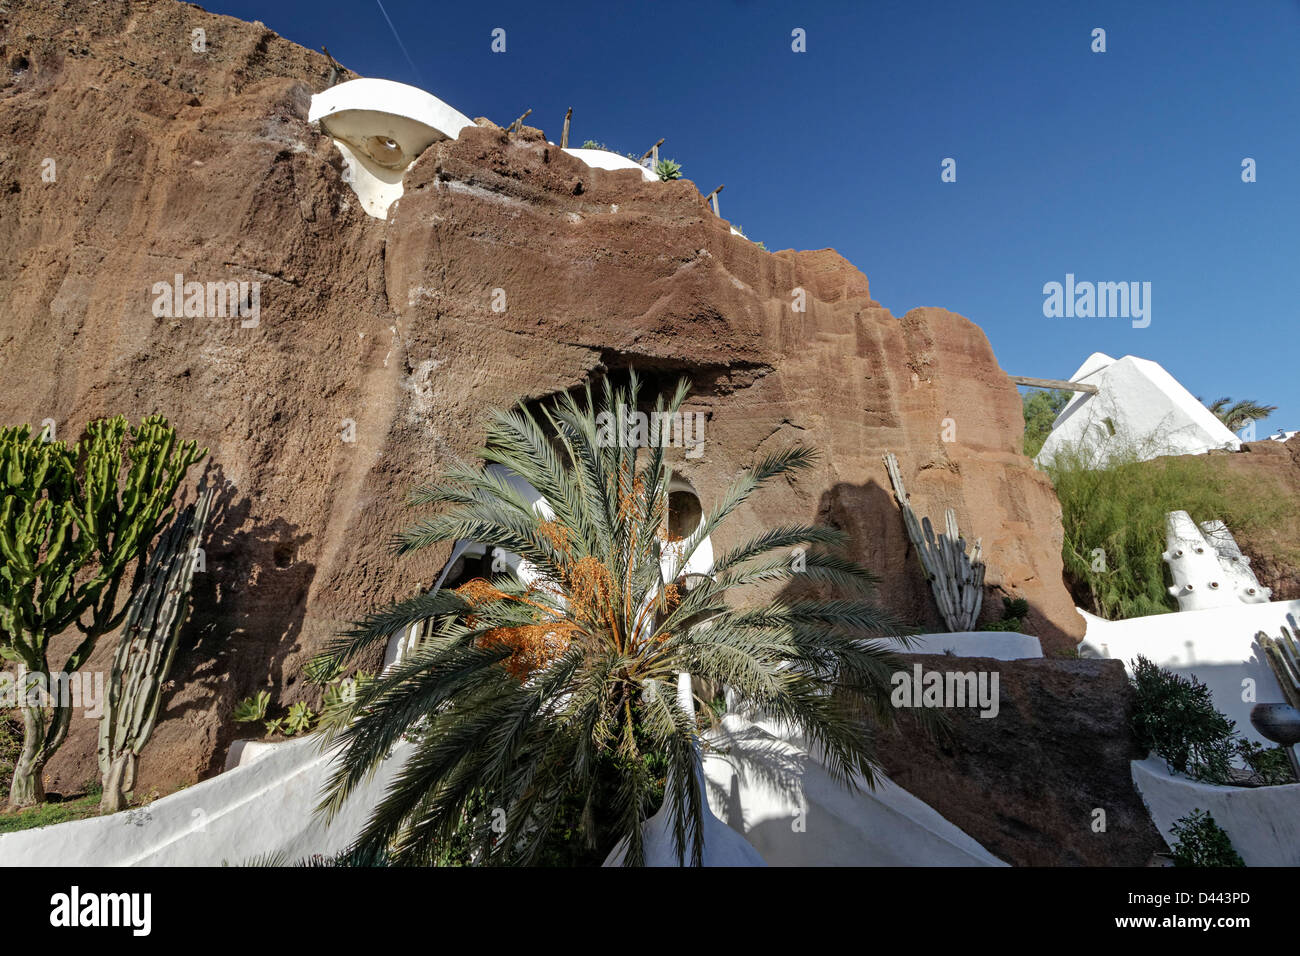 Casa Omar Sharif, LagOmar, Architect Cesar Manrique, Pool, Lanzarote, Canary Islands, Spain - Stock Image